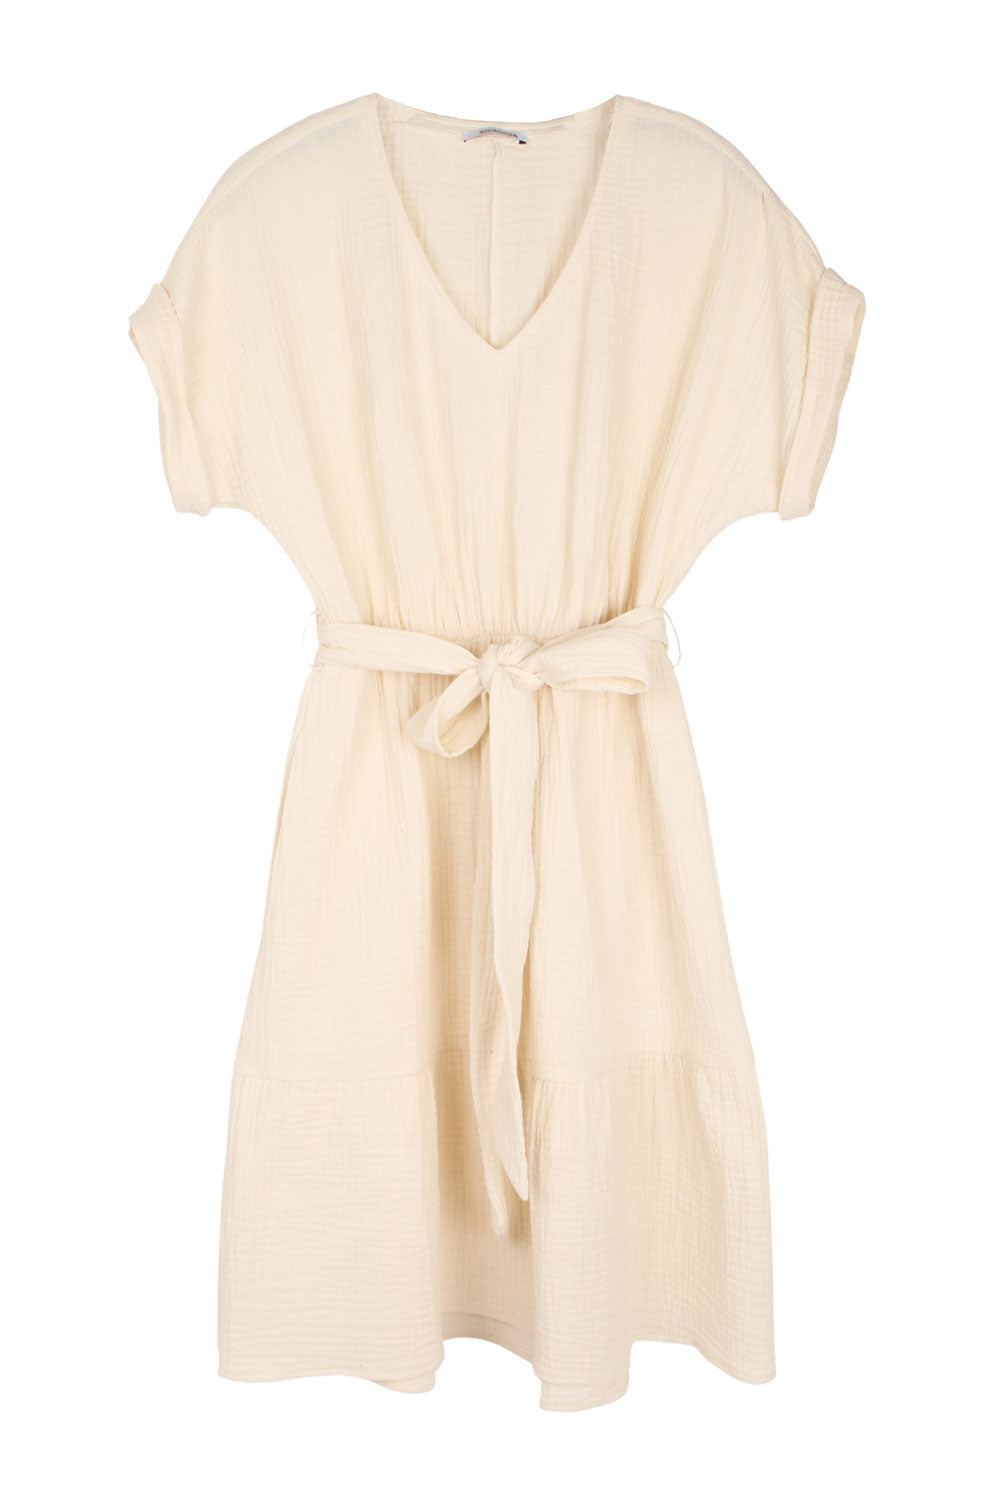 Willow Marshmallow Dress